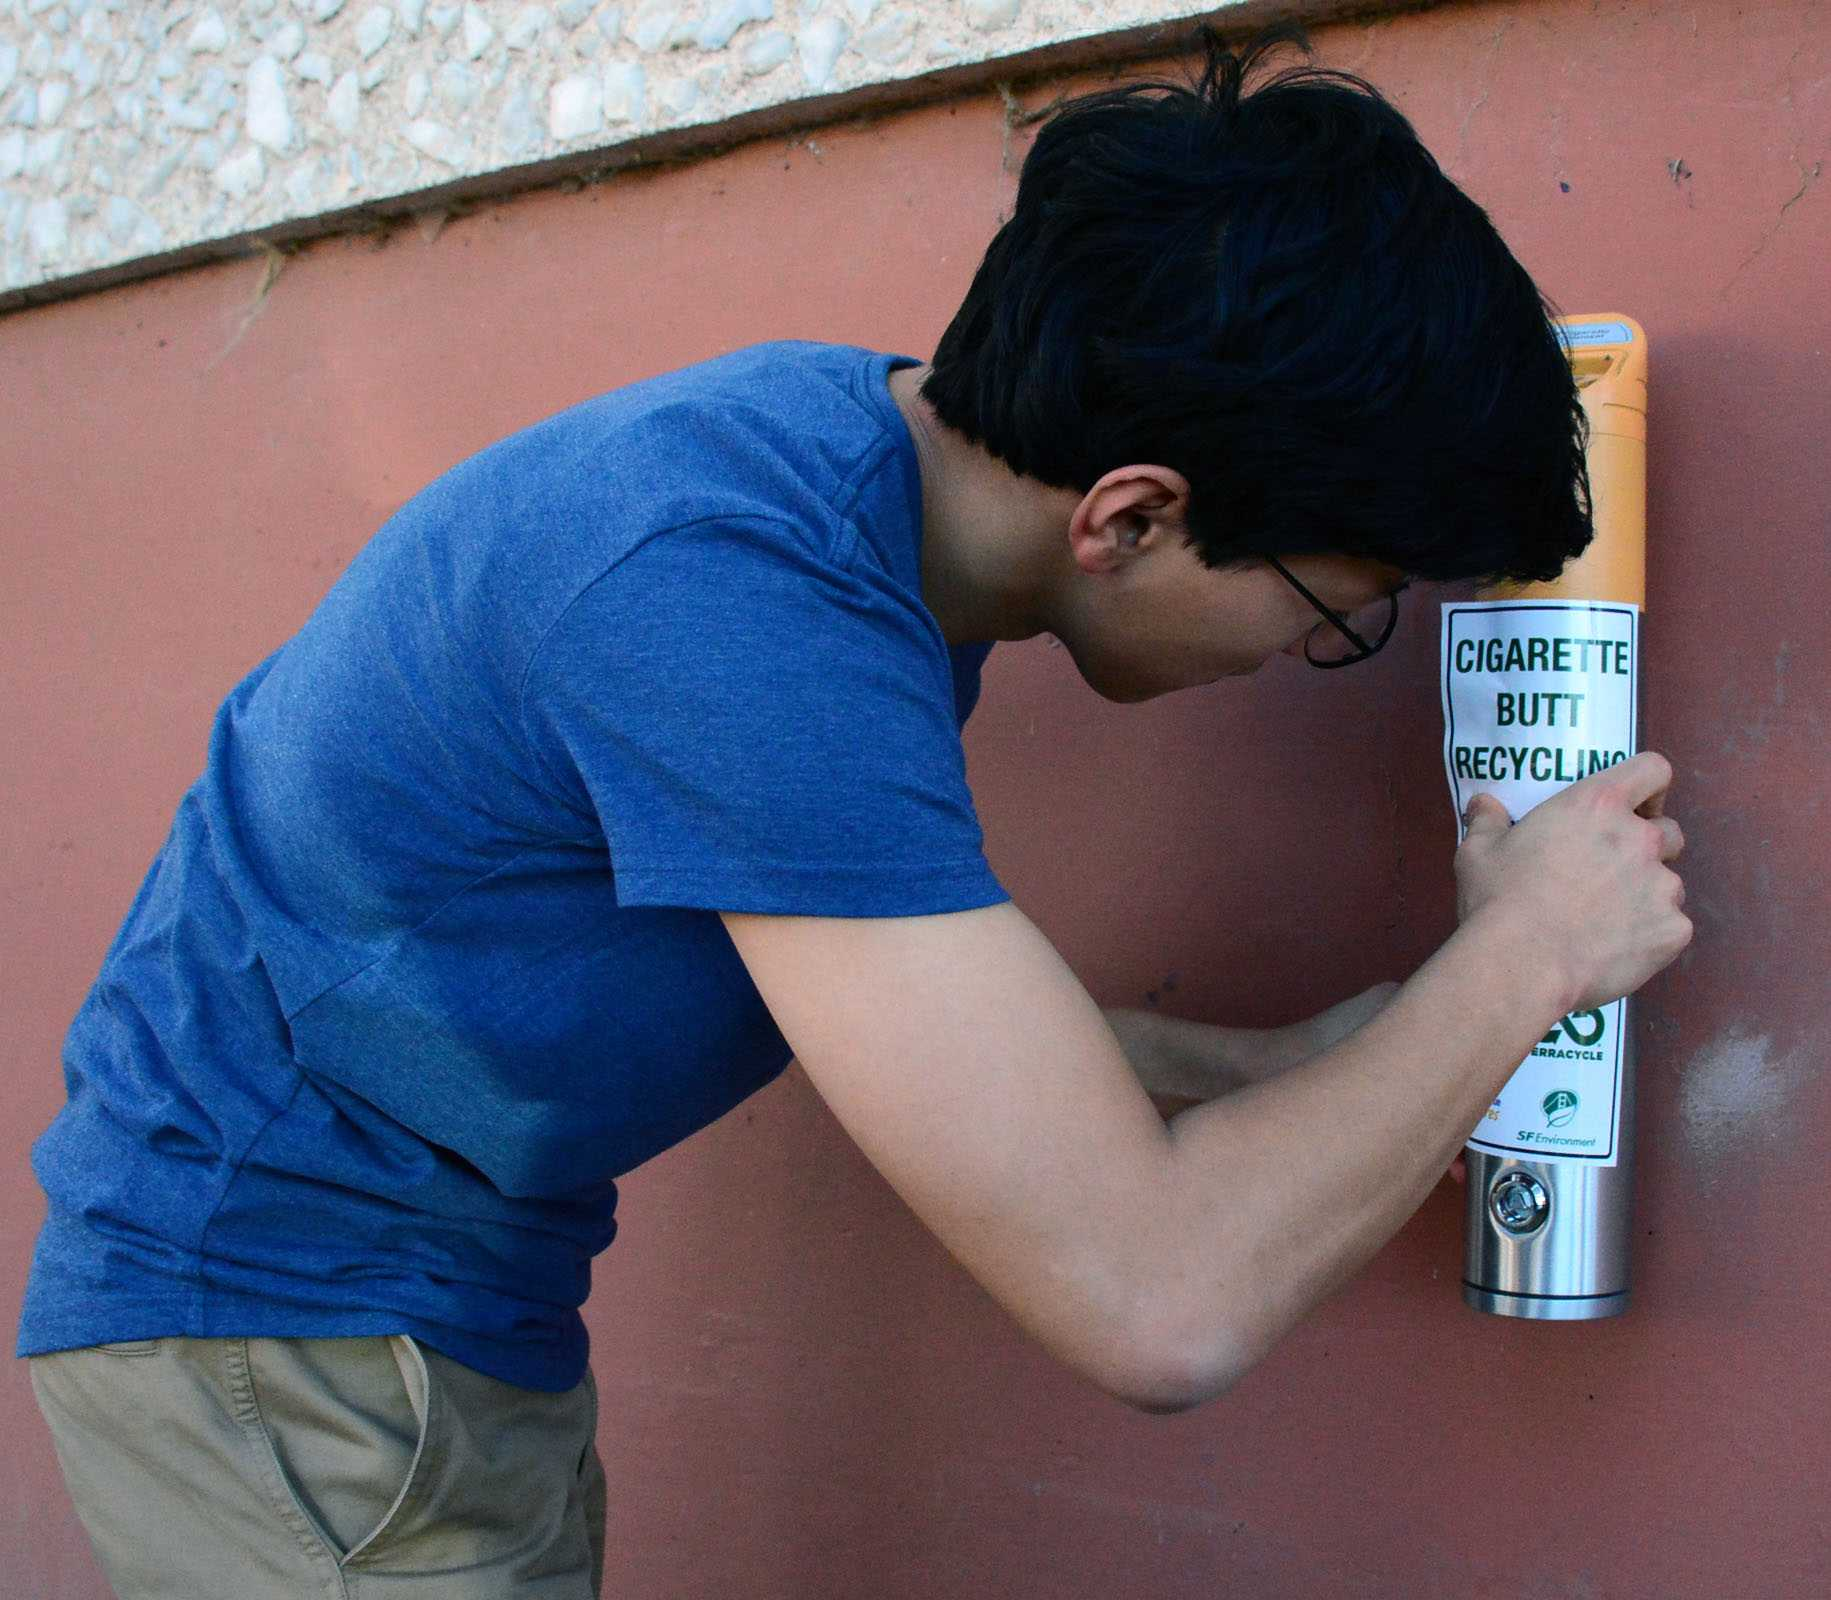 SF State student An Bui places the identifying sticker on the cigarette recycling bin located along Tapia Dive, Thursday, March 17, 2016. (Connor Hunt / Xpress)